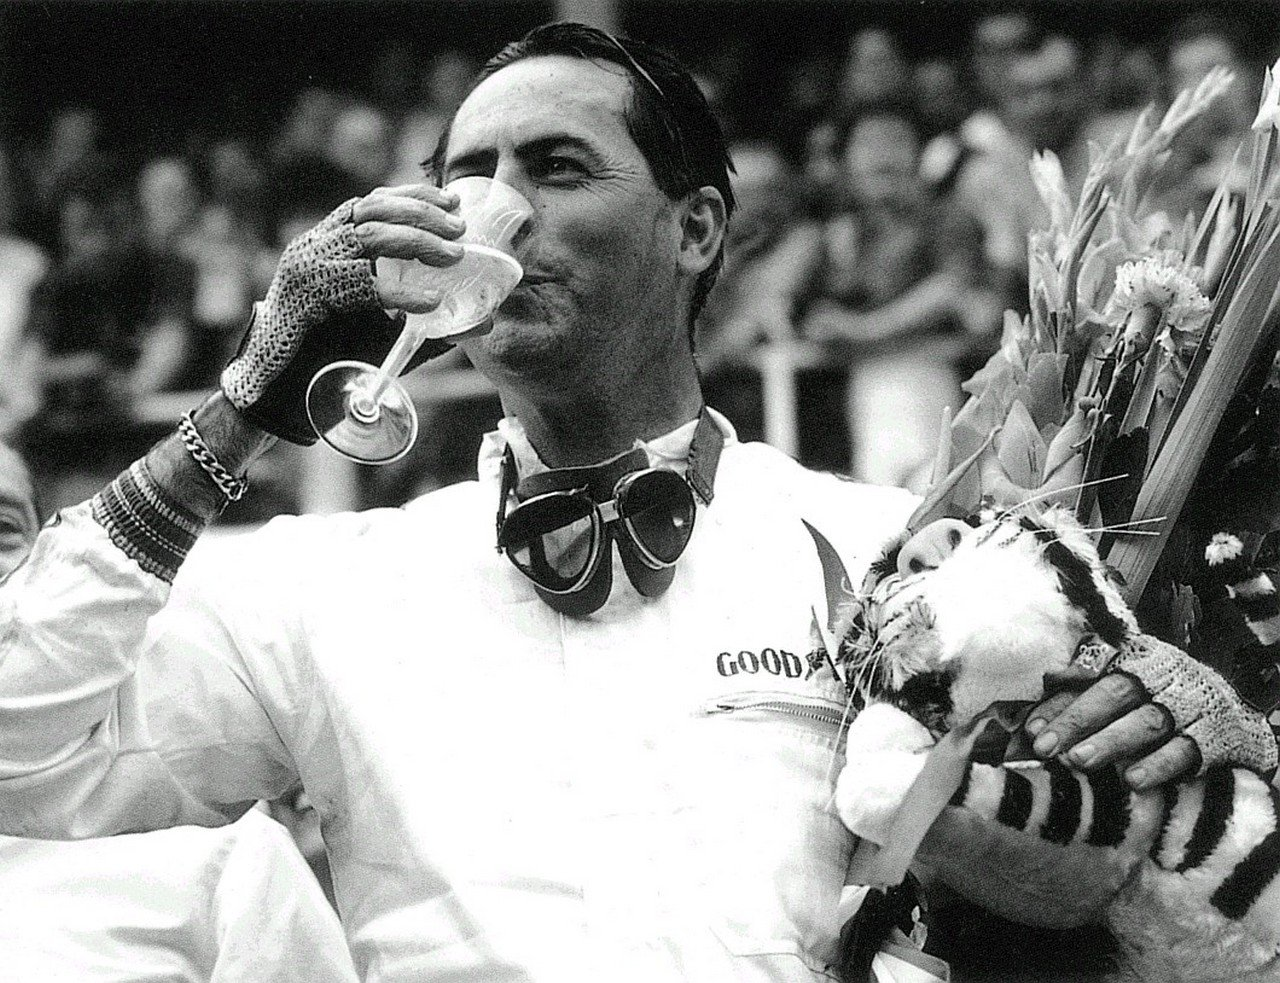 jack_brabham_celebrating_1966_world_championship